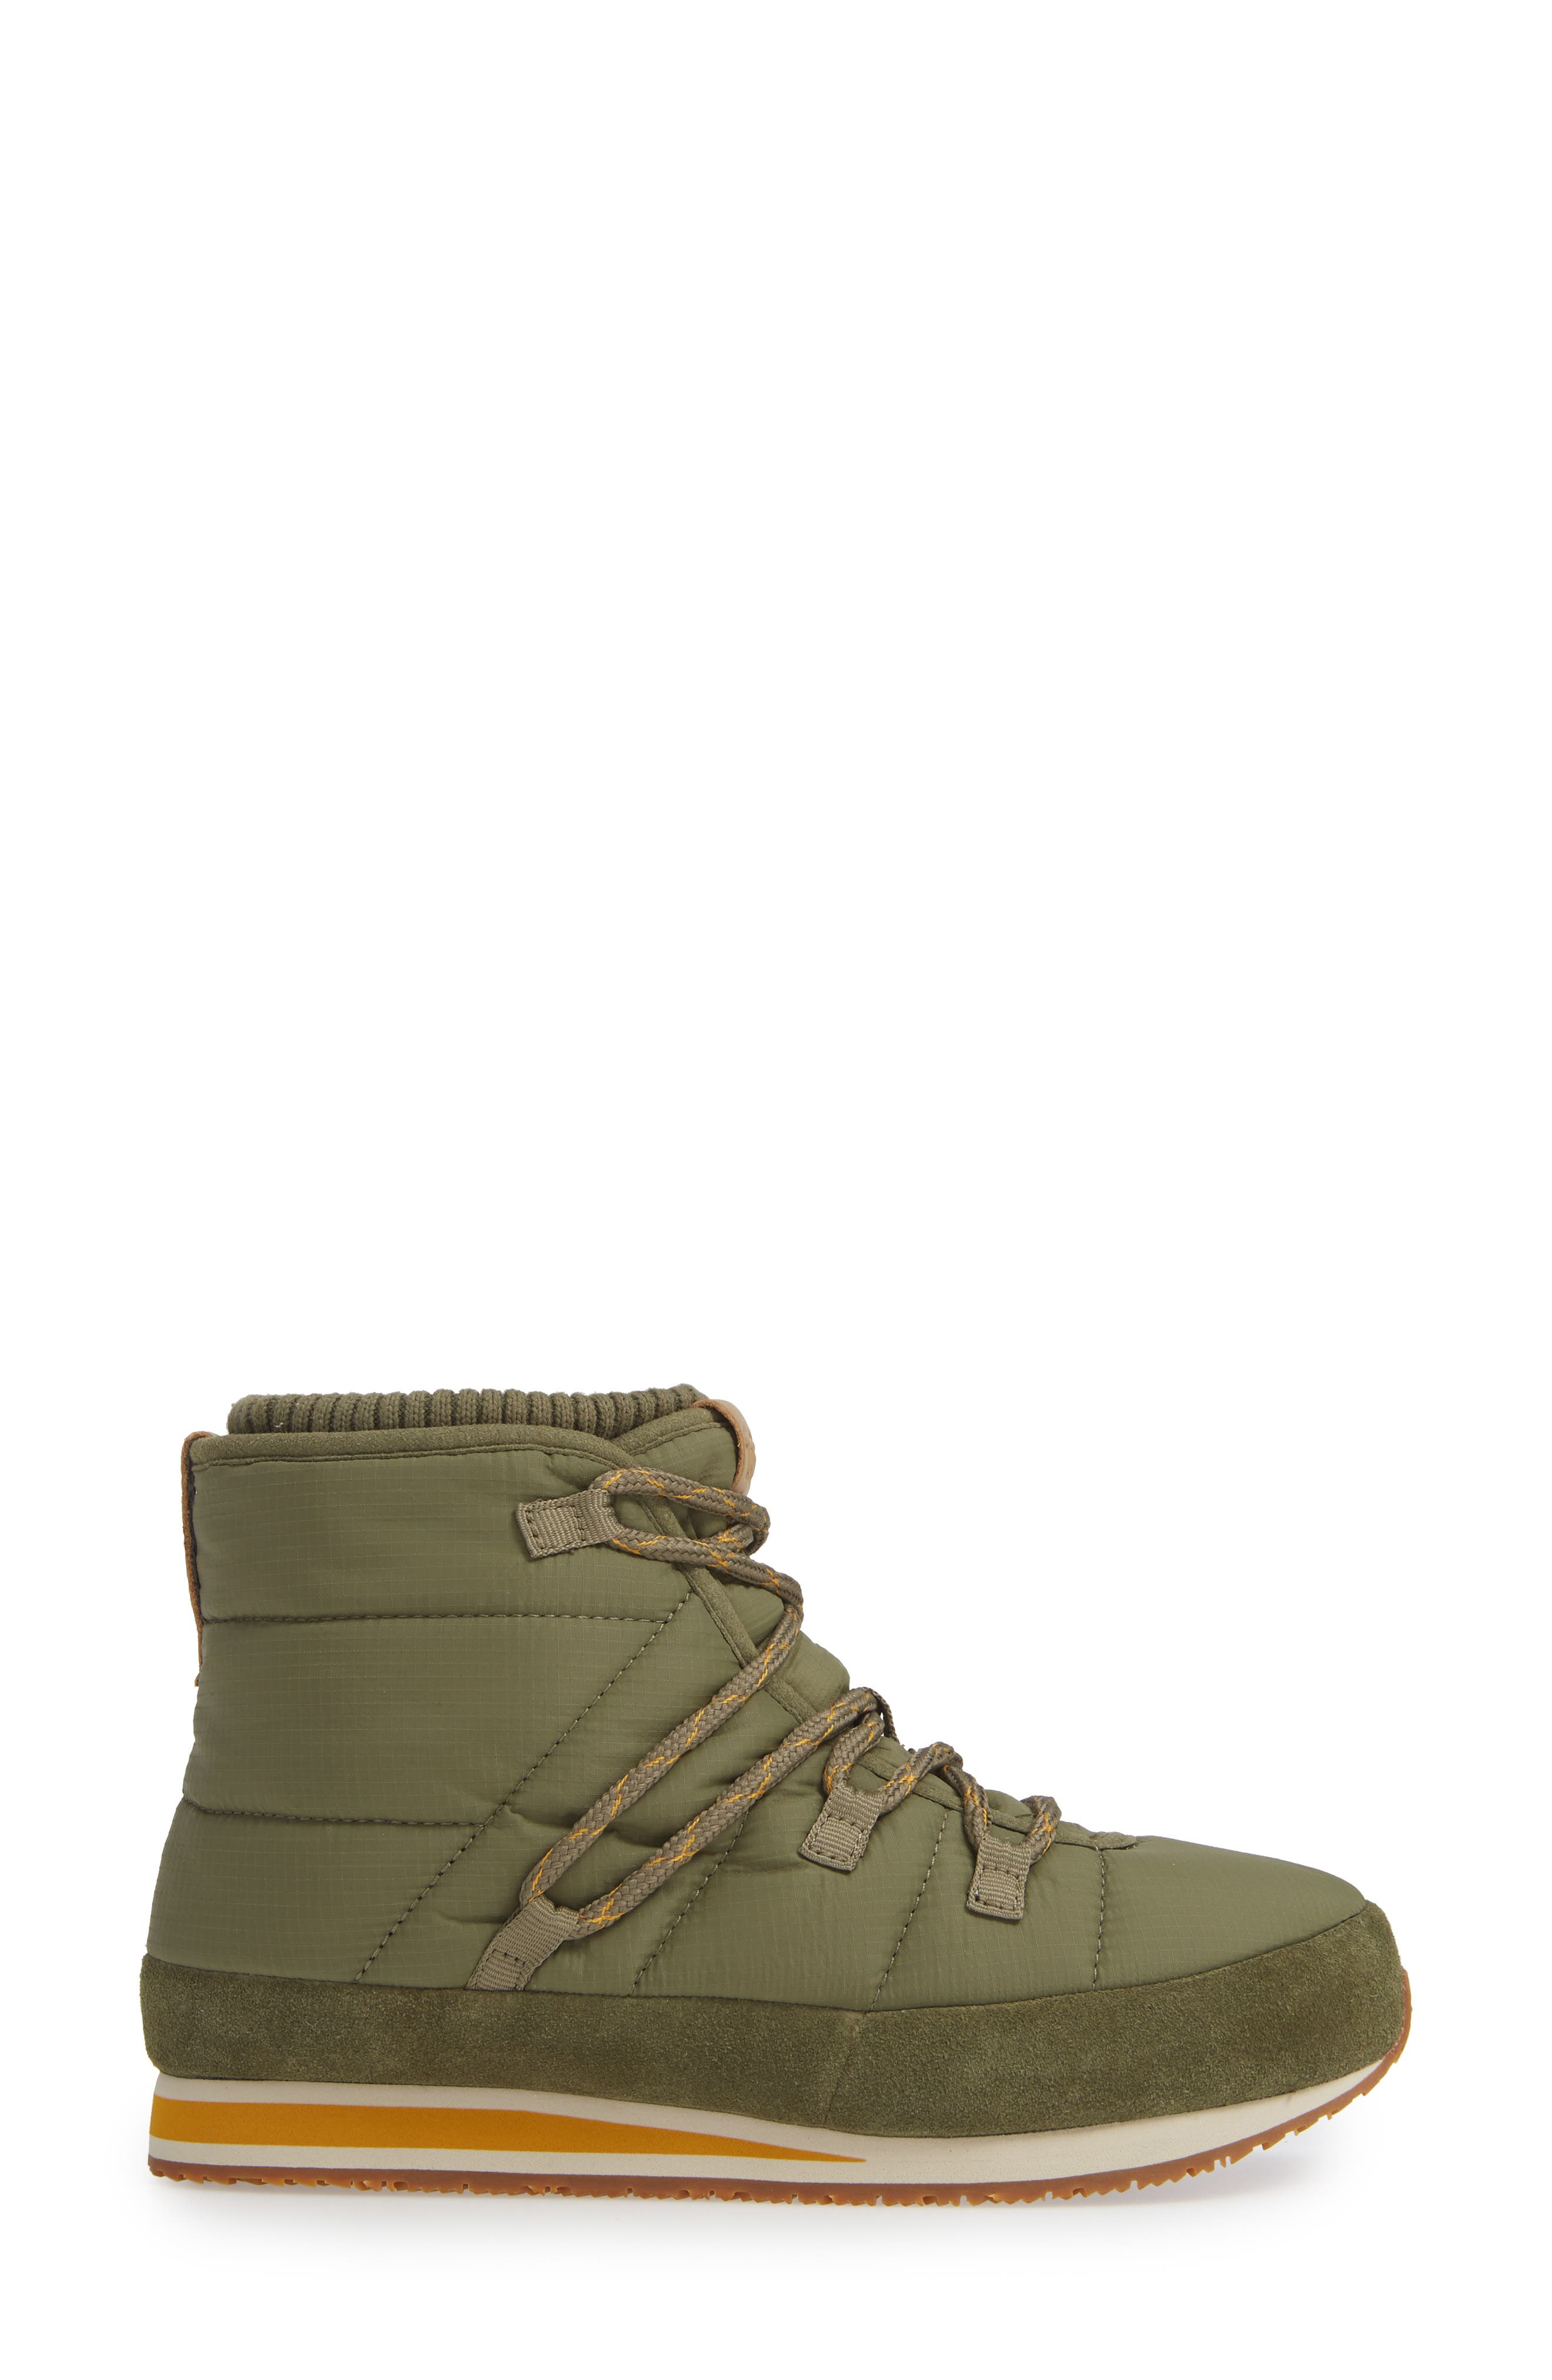 TEVA, Ember Lace-Up Winter Bootie, Alternate thumbnail 3, color, BURNT OLIVE FABRIC